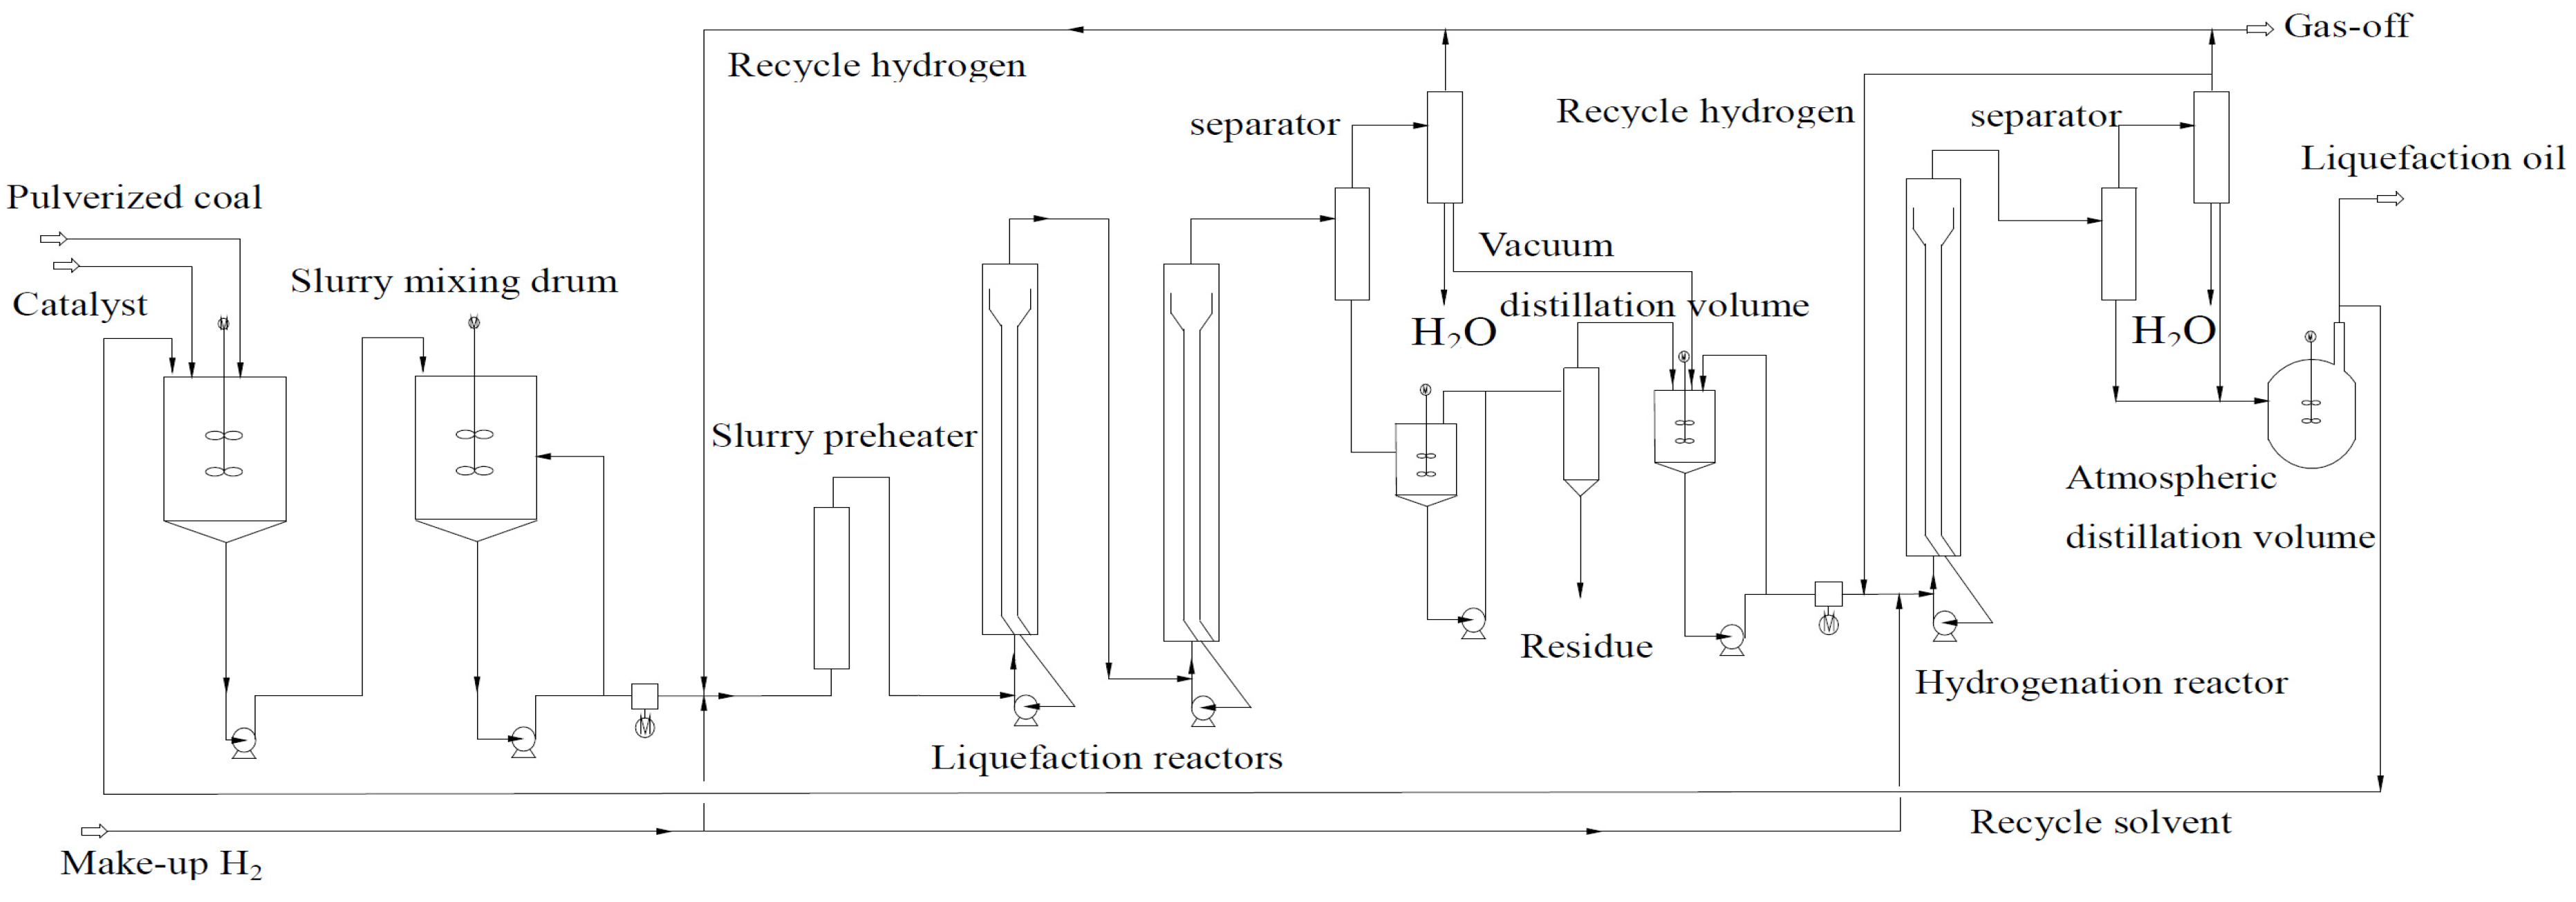 energies 08 06795 g001  figure 1  the process flow diagram